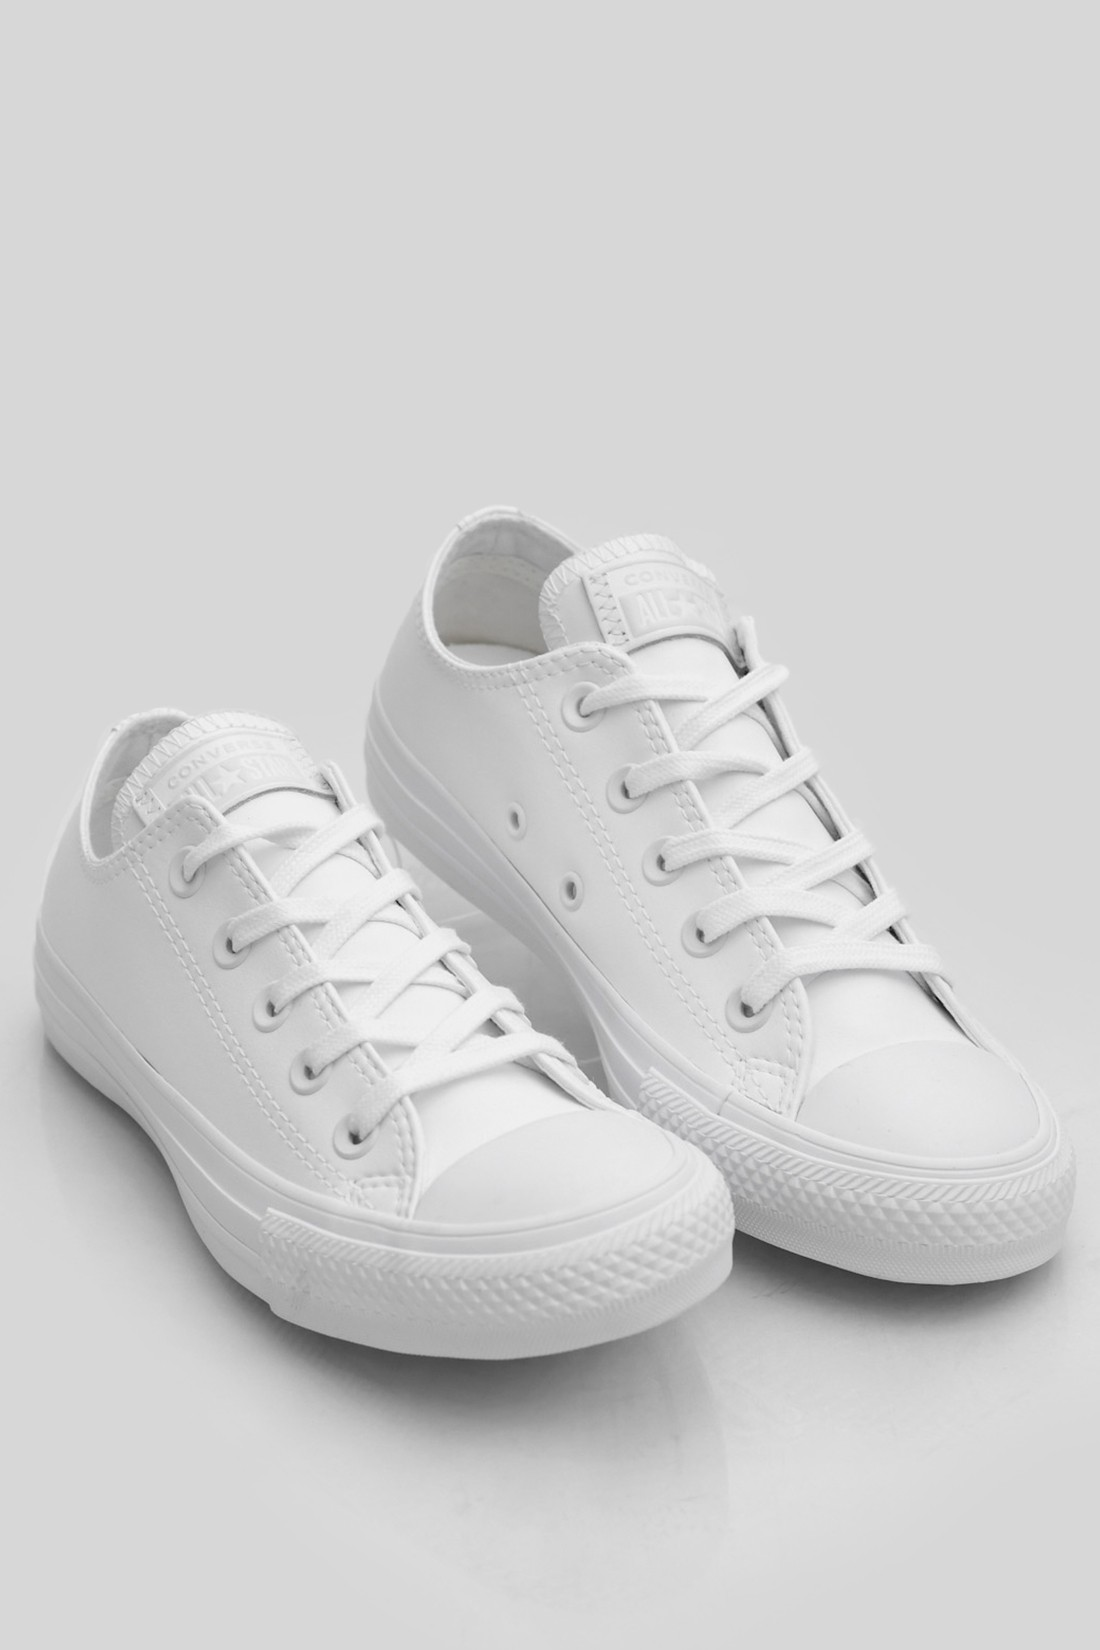 Tenis Casual Fem All Star Monochrome Courinho